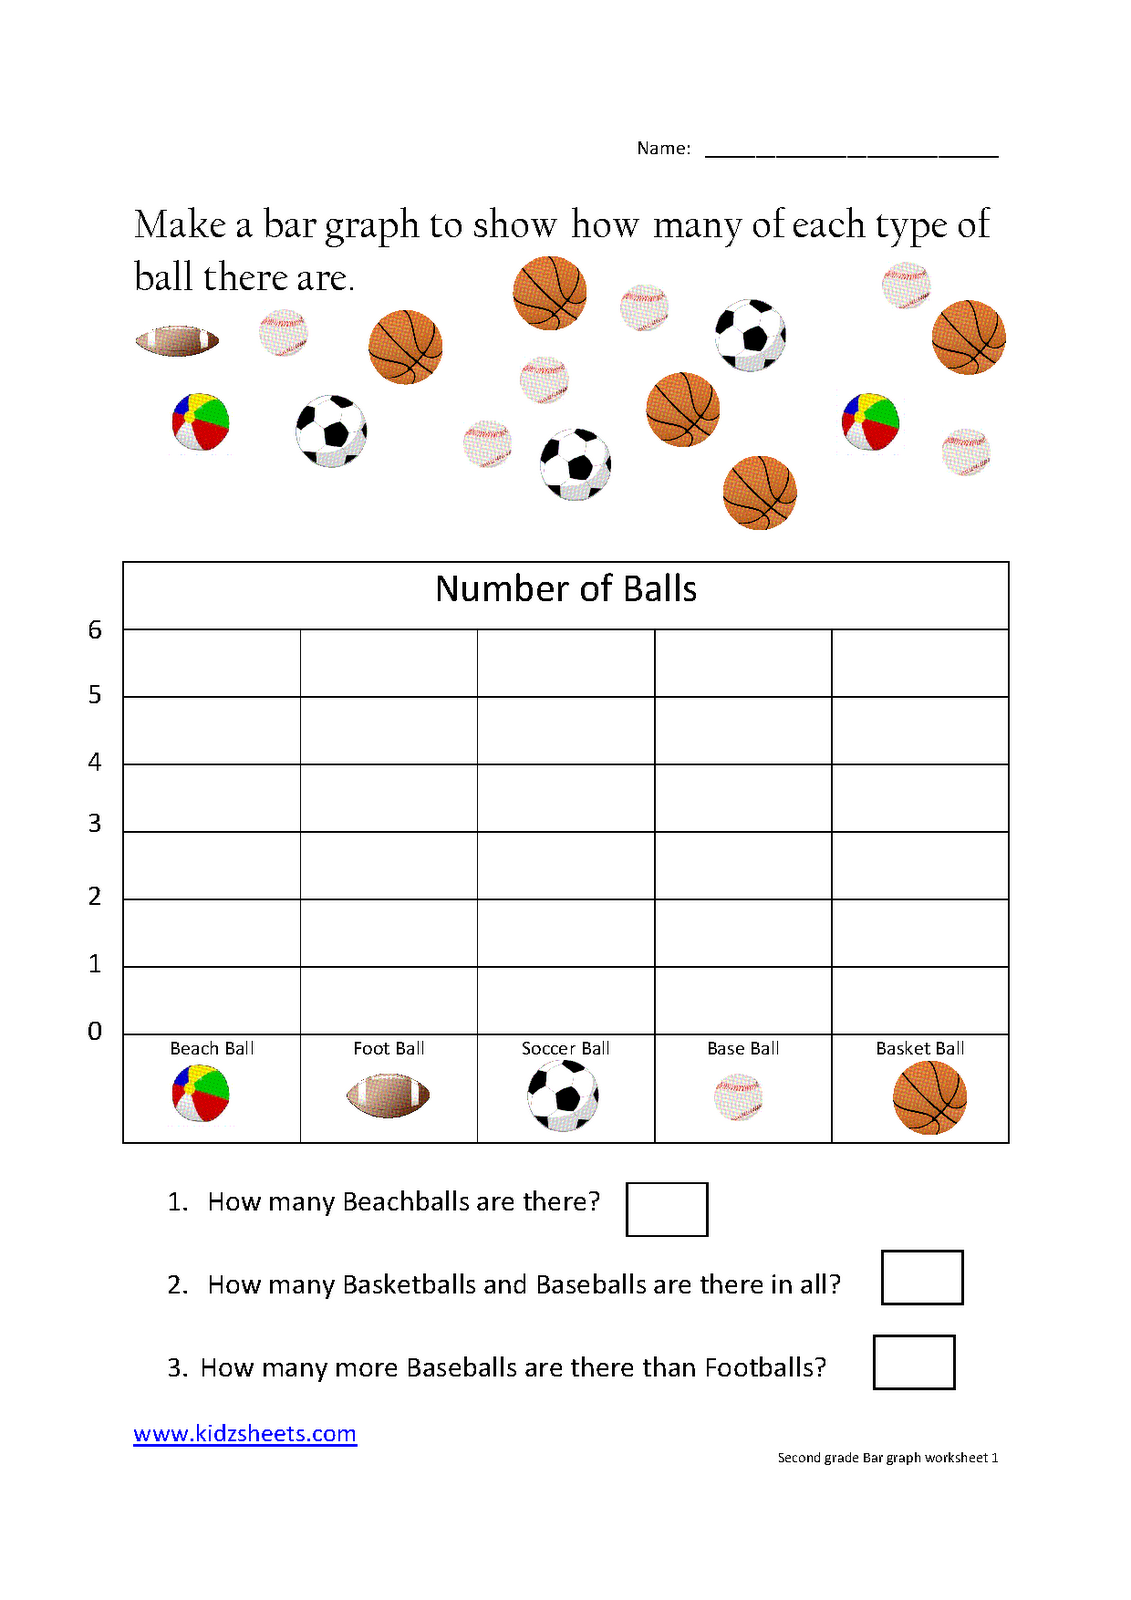 Kidz Worksheets Second Grade Bar Graph Worksheet1 – 2nd Grade Graphing Worksheets